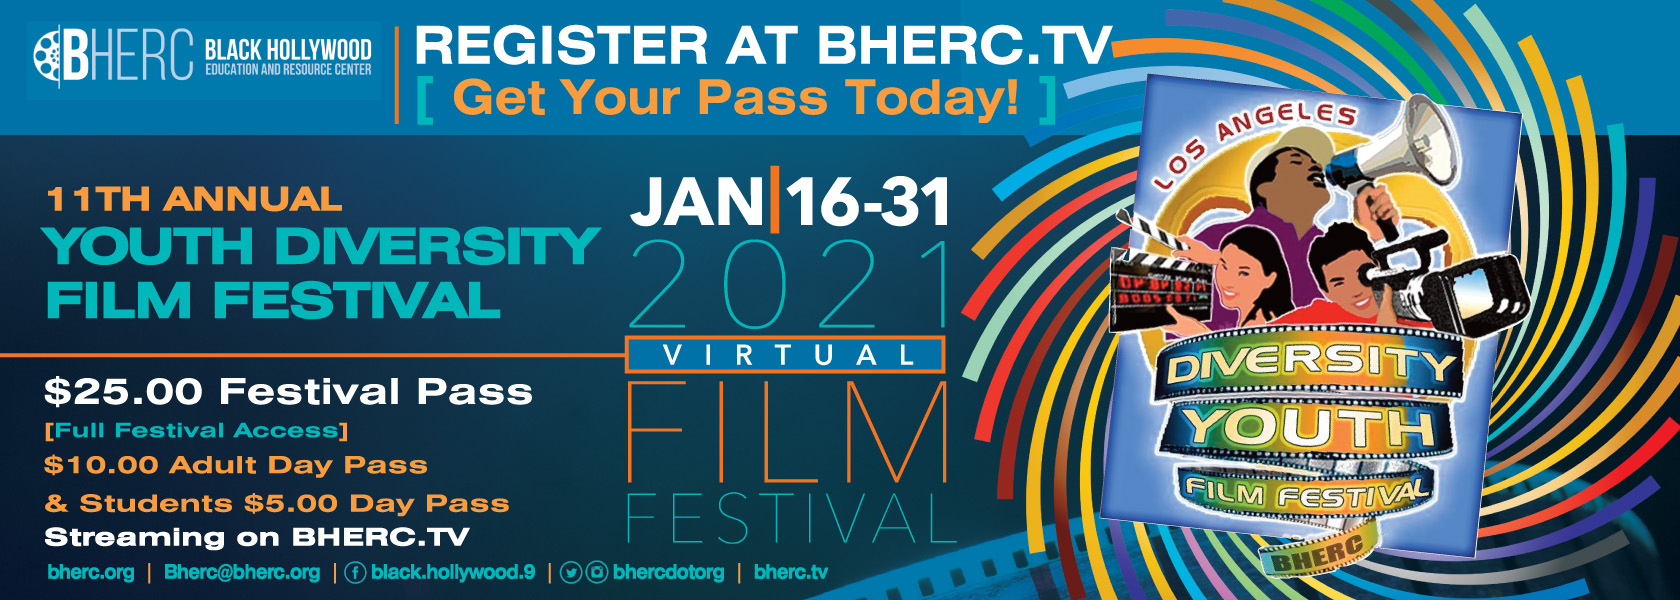 11th Annual Youth Diversity Film Festival